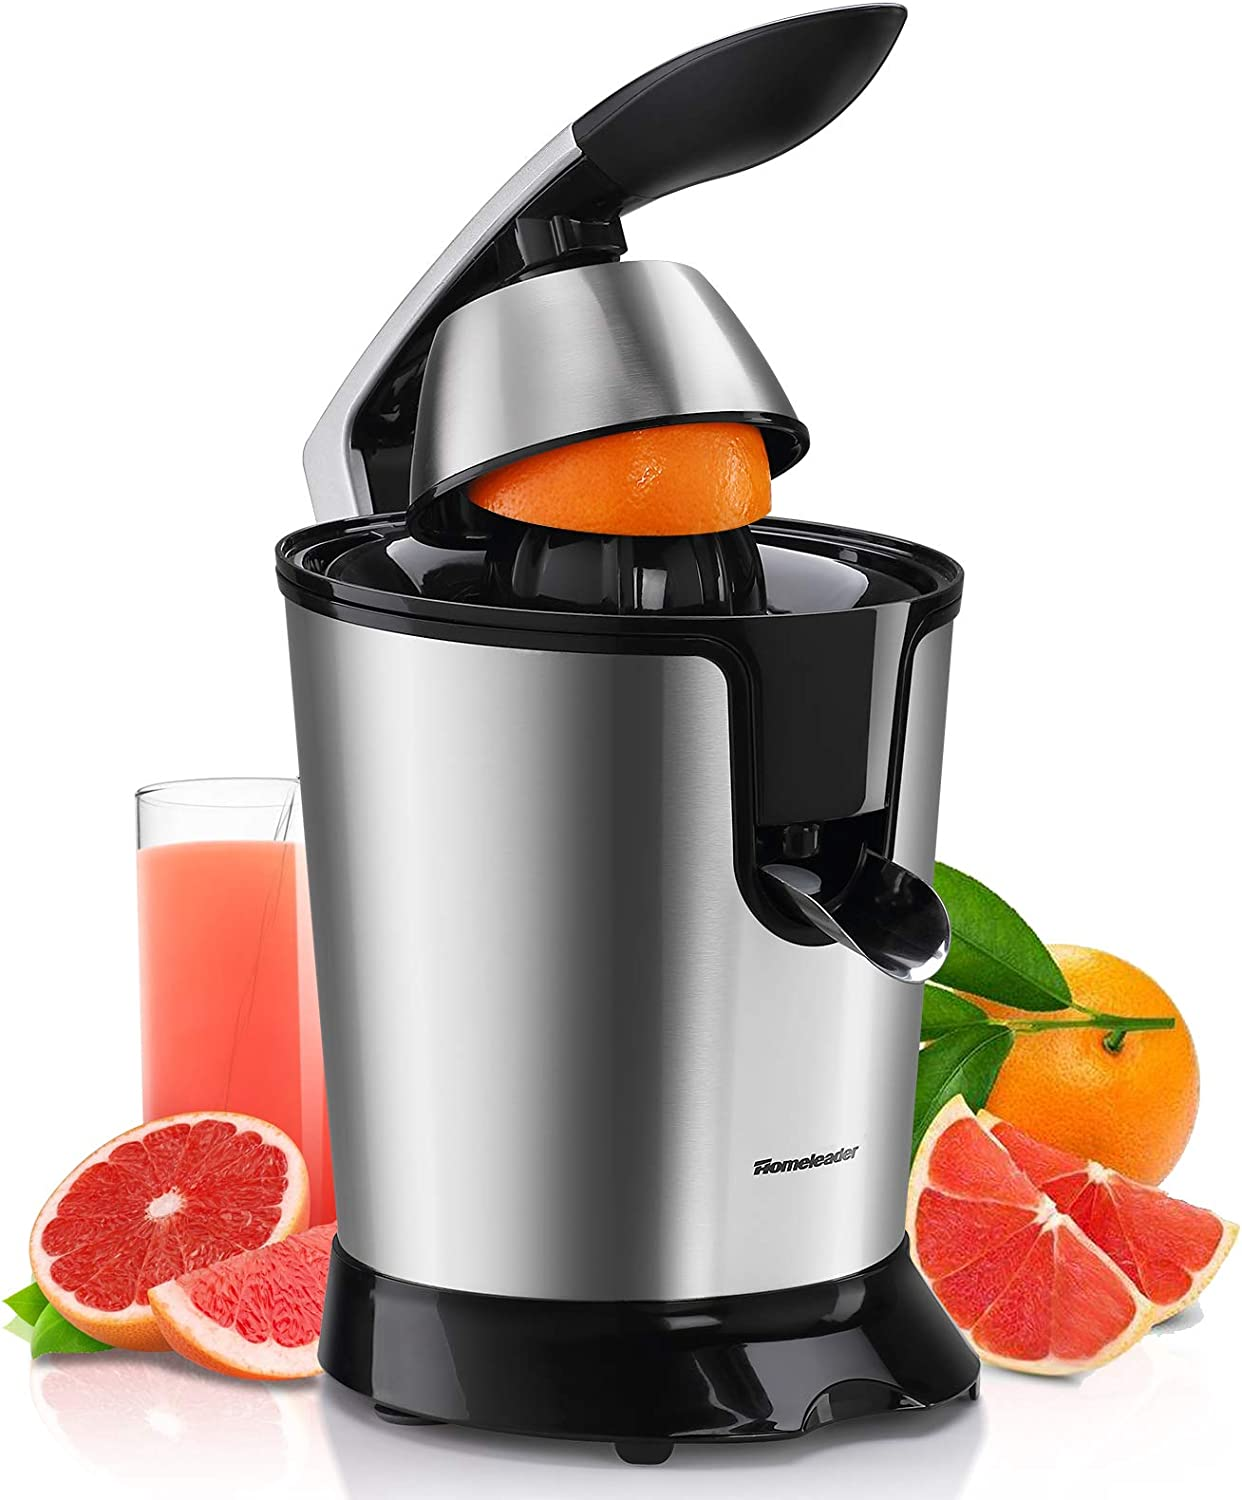 Homeleader Electric Citrus Juicer, Orange Juice Squeezer with Double Reamers, Soft Grip Handle, Stainless Steel, Easy to Use and Clean, Anti-Drip Spout, 350W Powerful Motor for Grapefruits, Orange and Lemon